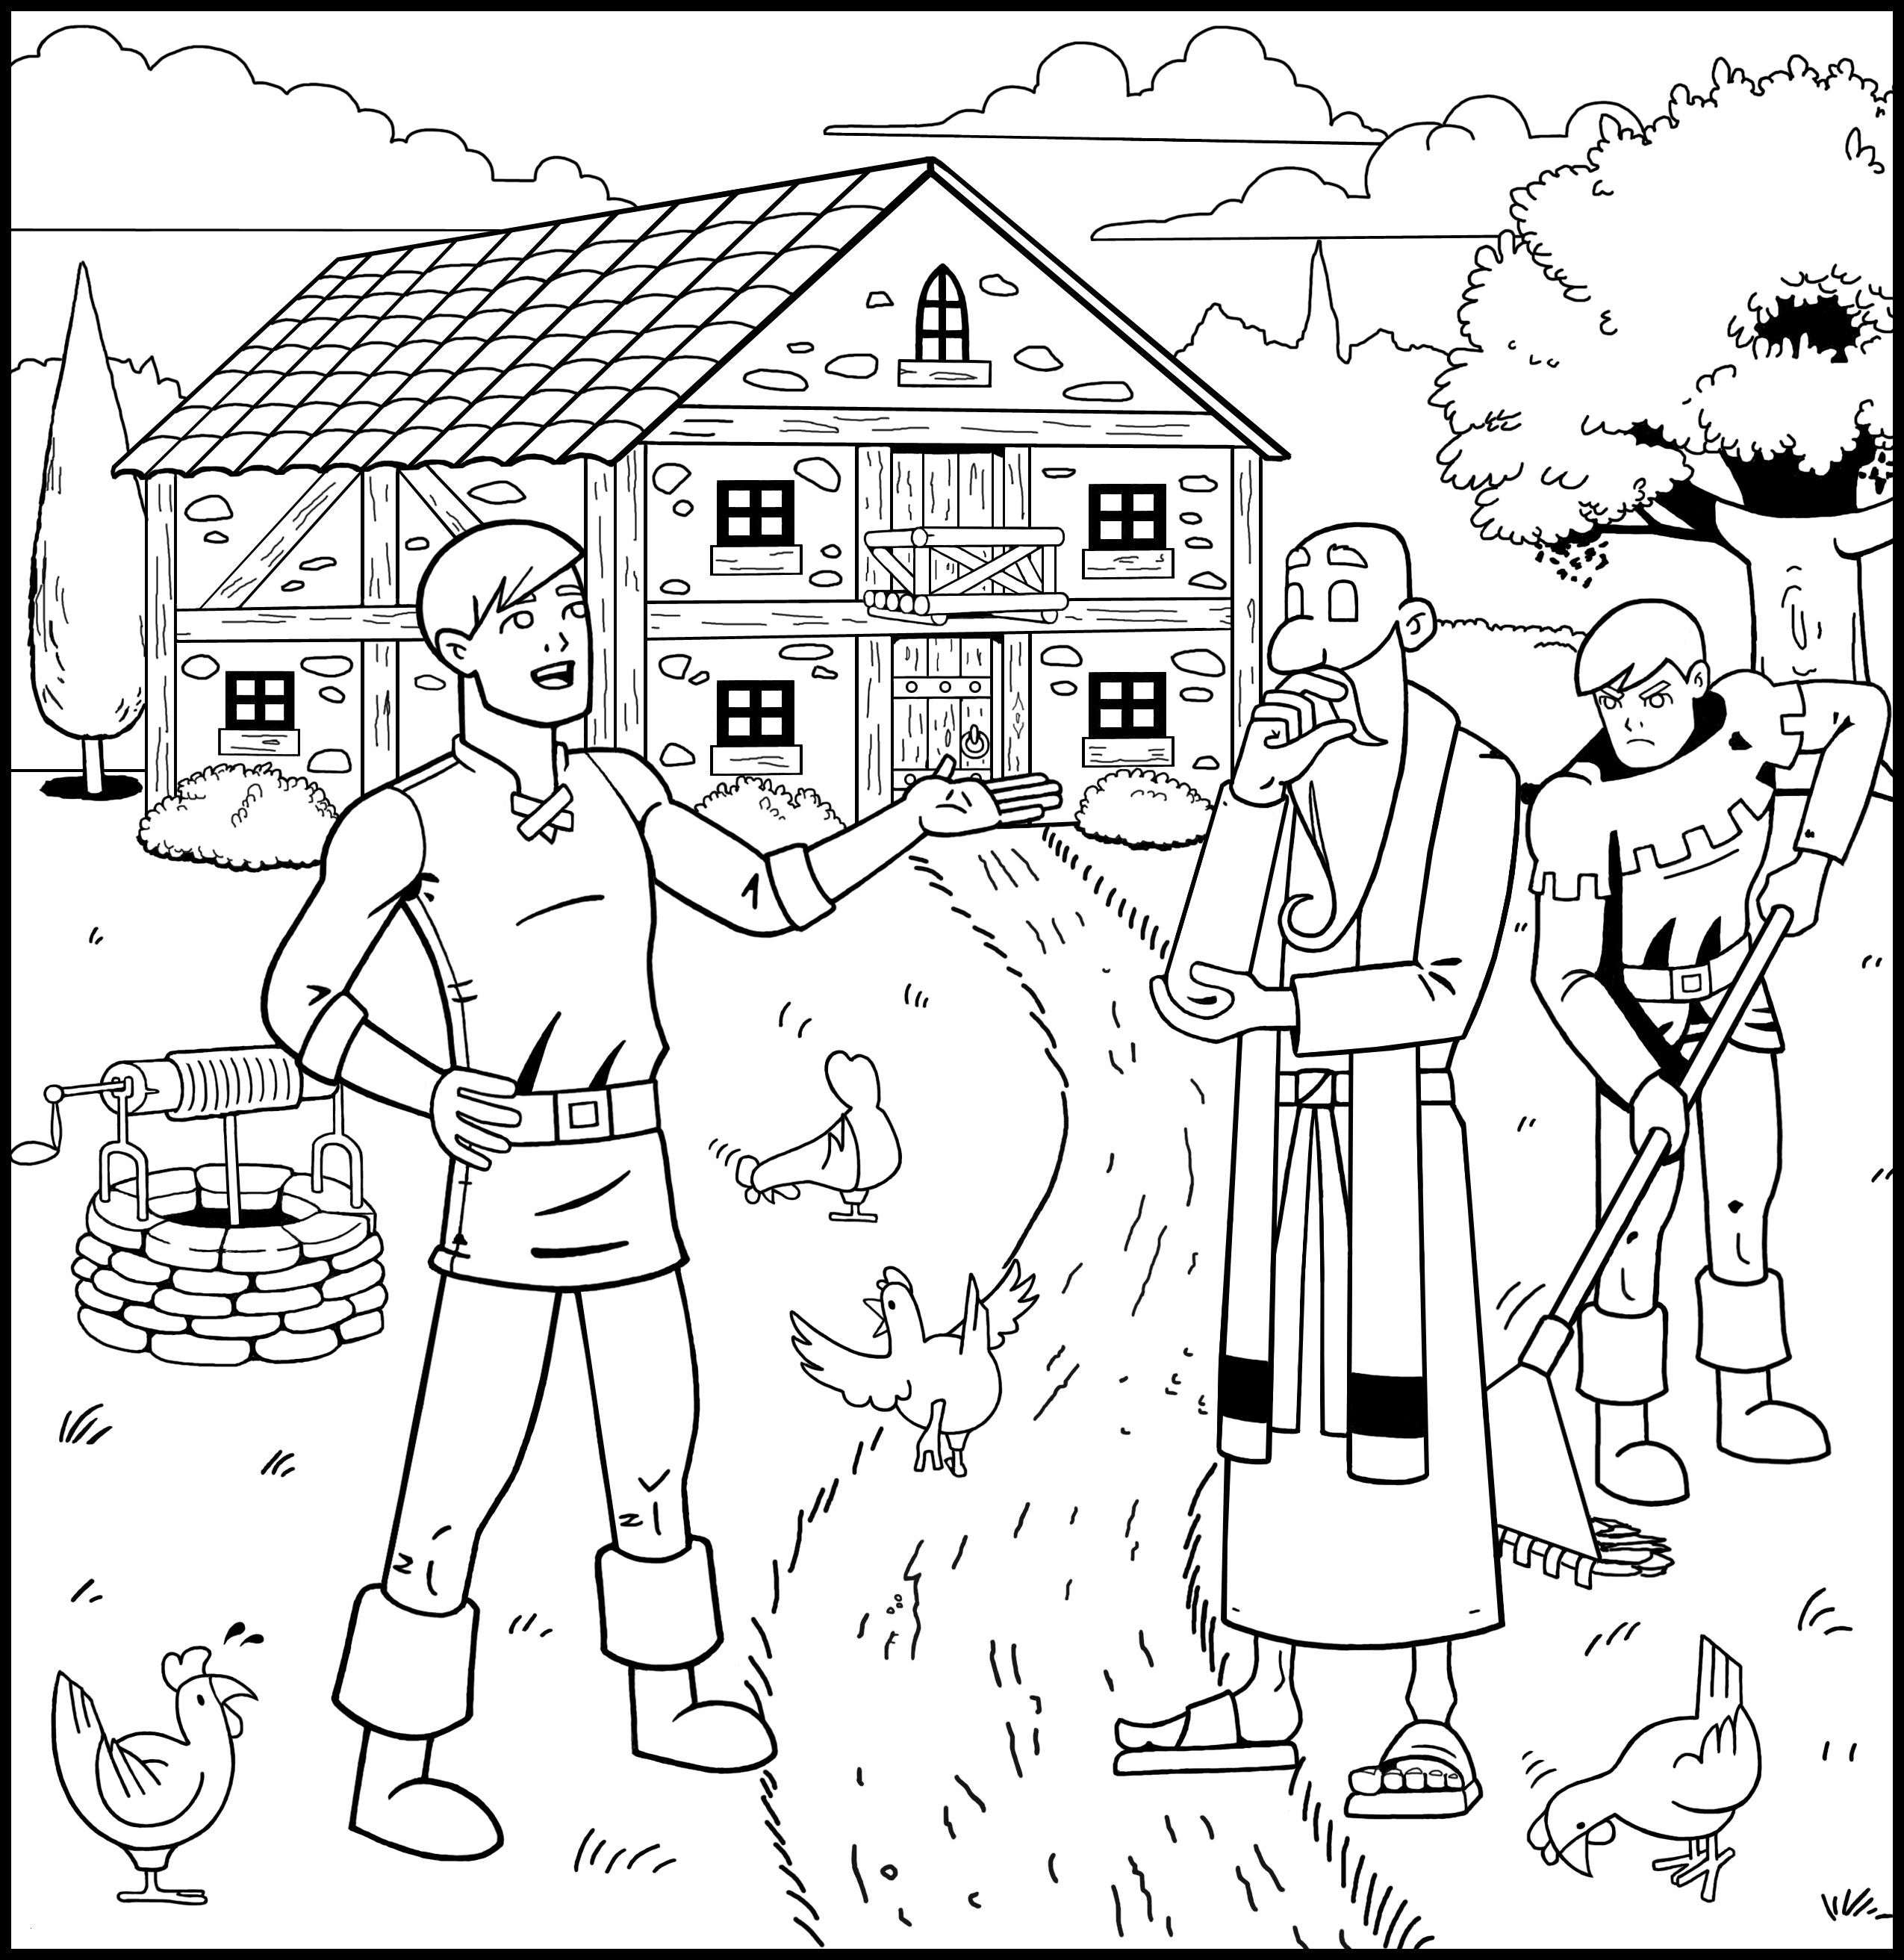 Prodigal son Coloring Pages  Printable 7e - To print for your project